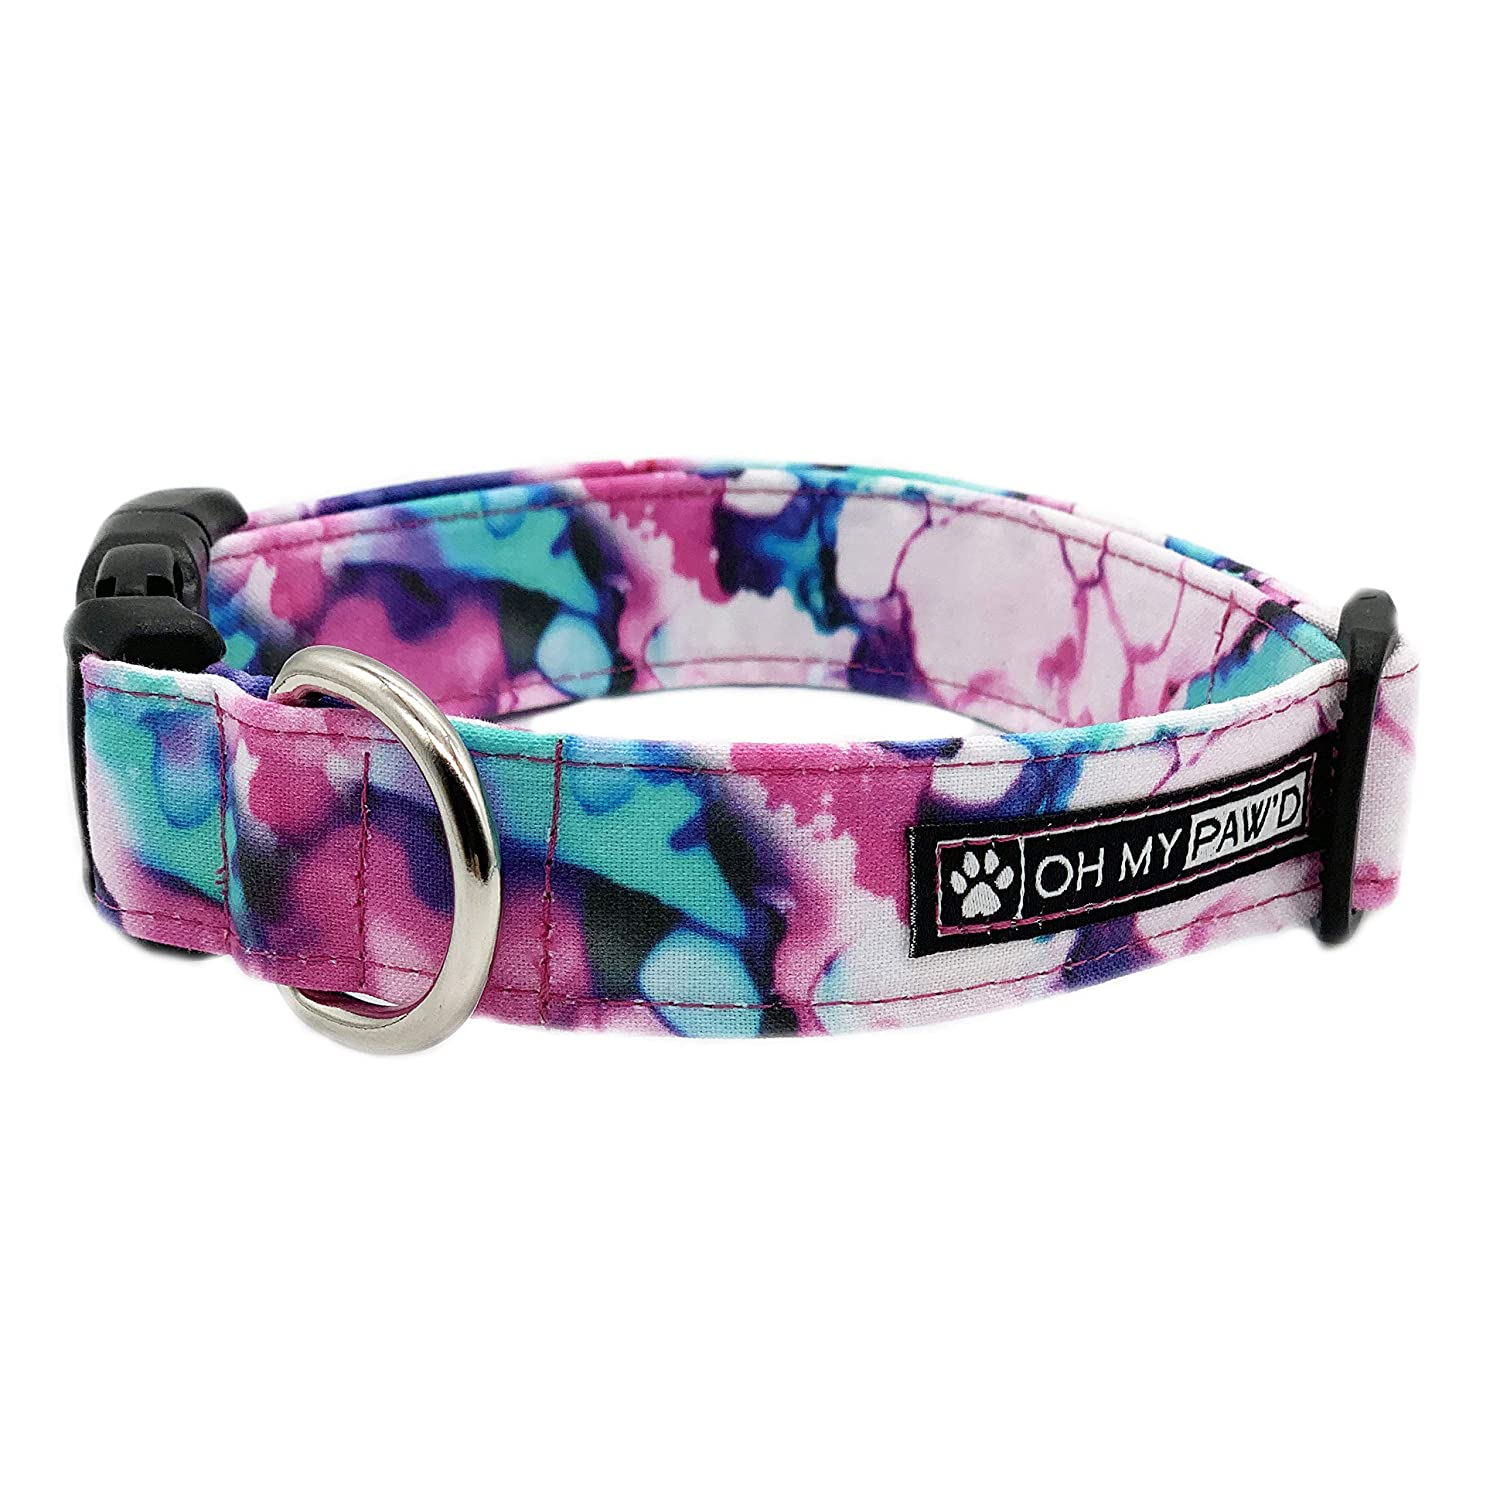 Watercolor Collar for Pets Size Large 1 Inch and Wide 17-25 Inches Long - Hand Made Dog Collar by Oh My Paw'd